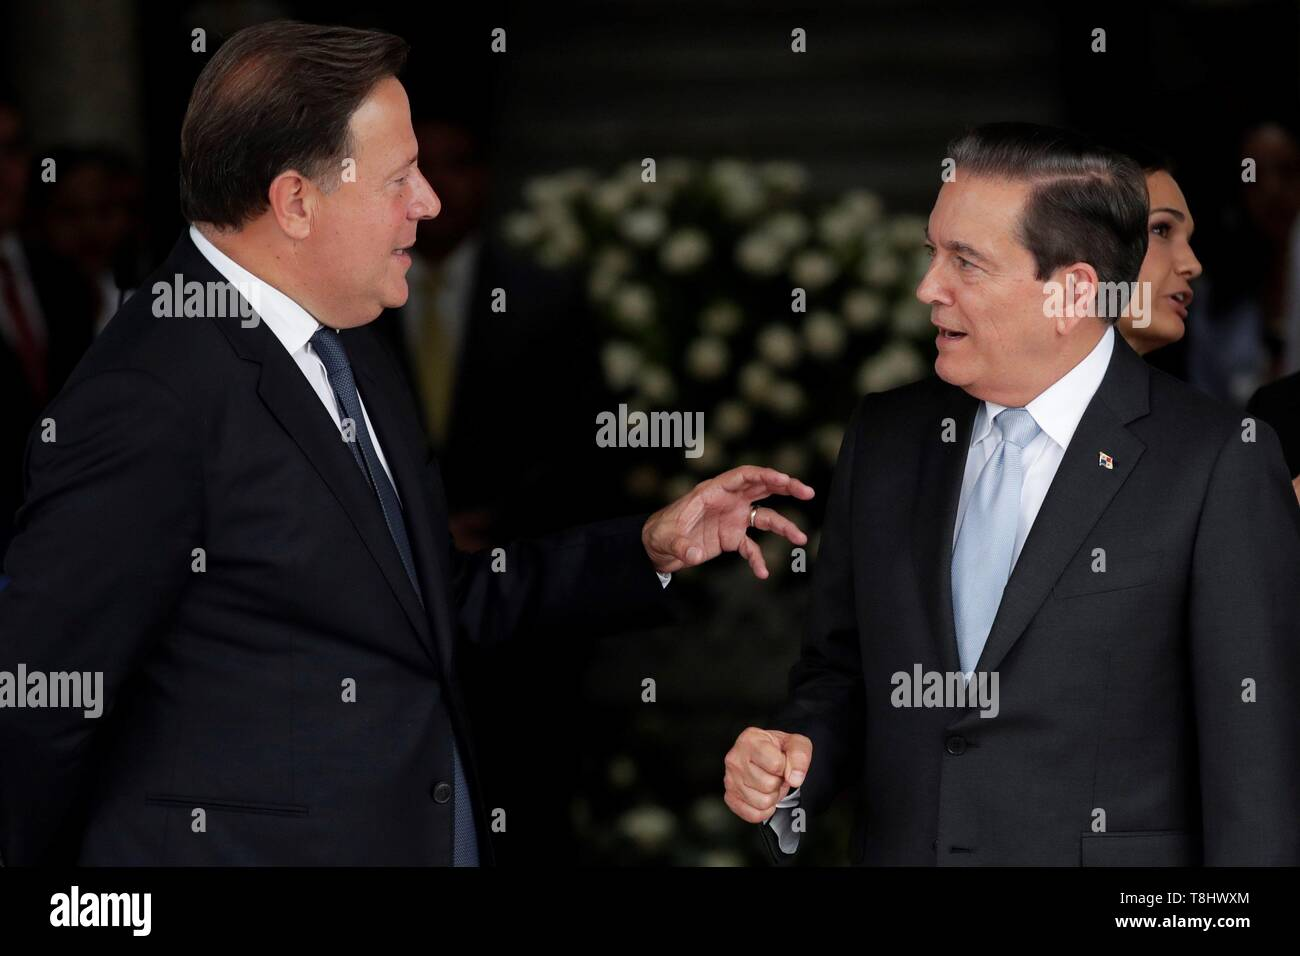 Panama's President Juan Carlos Varela (L) talks with the elect President Laurentino Cortizo (R) after a meeting of command handover at the Presidential Palace, in Panama City, Panama, on 13 May 2019. EFE/Bienvenido Velasco - Stock Image